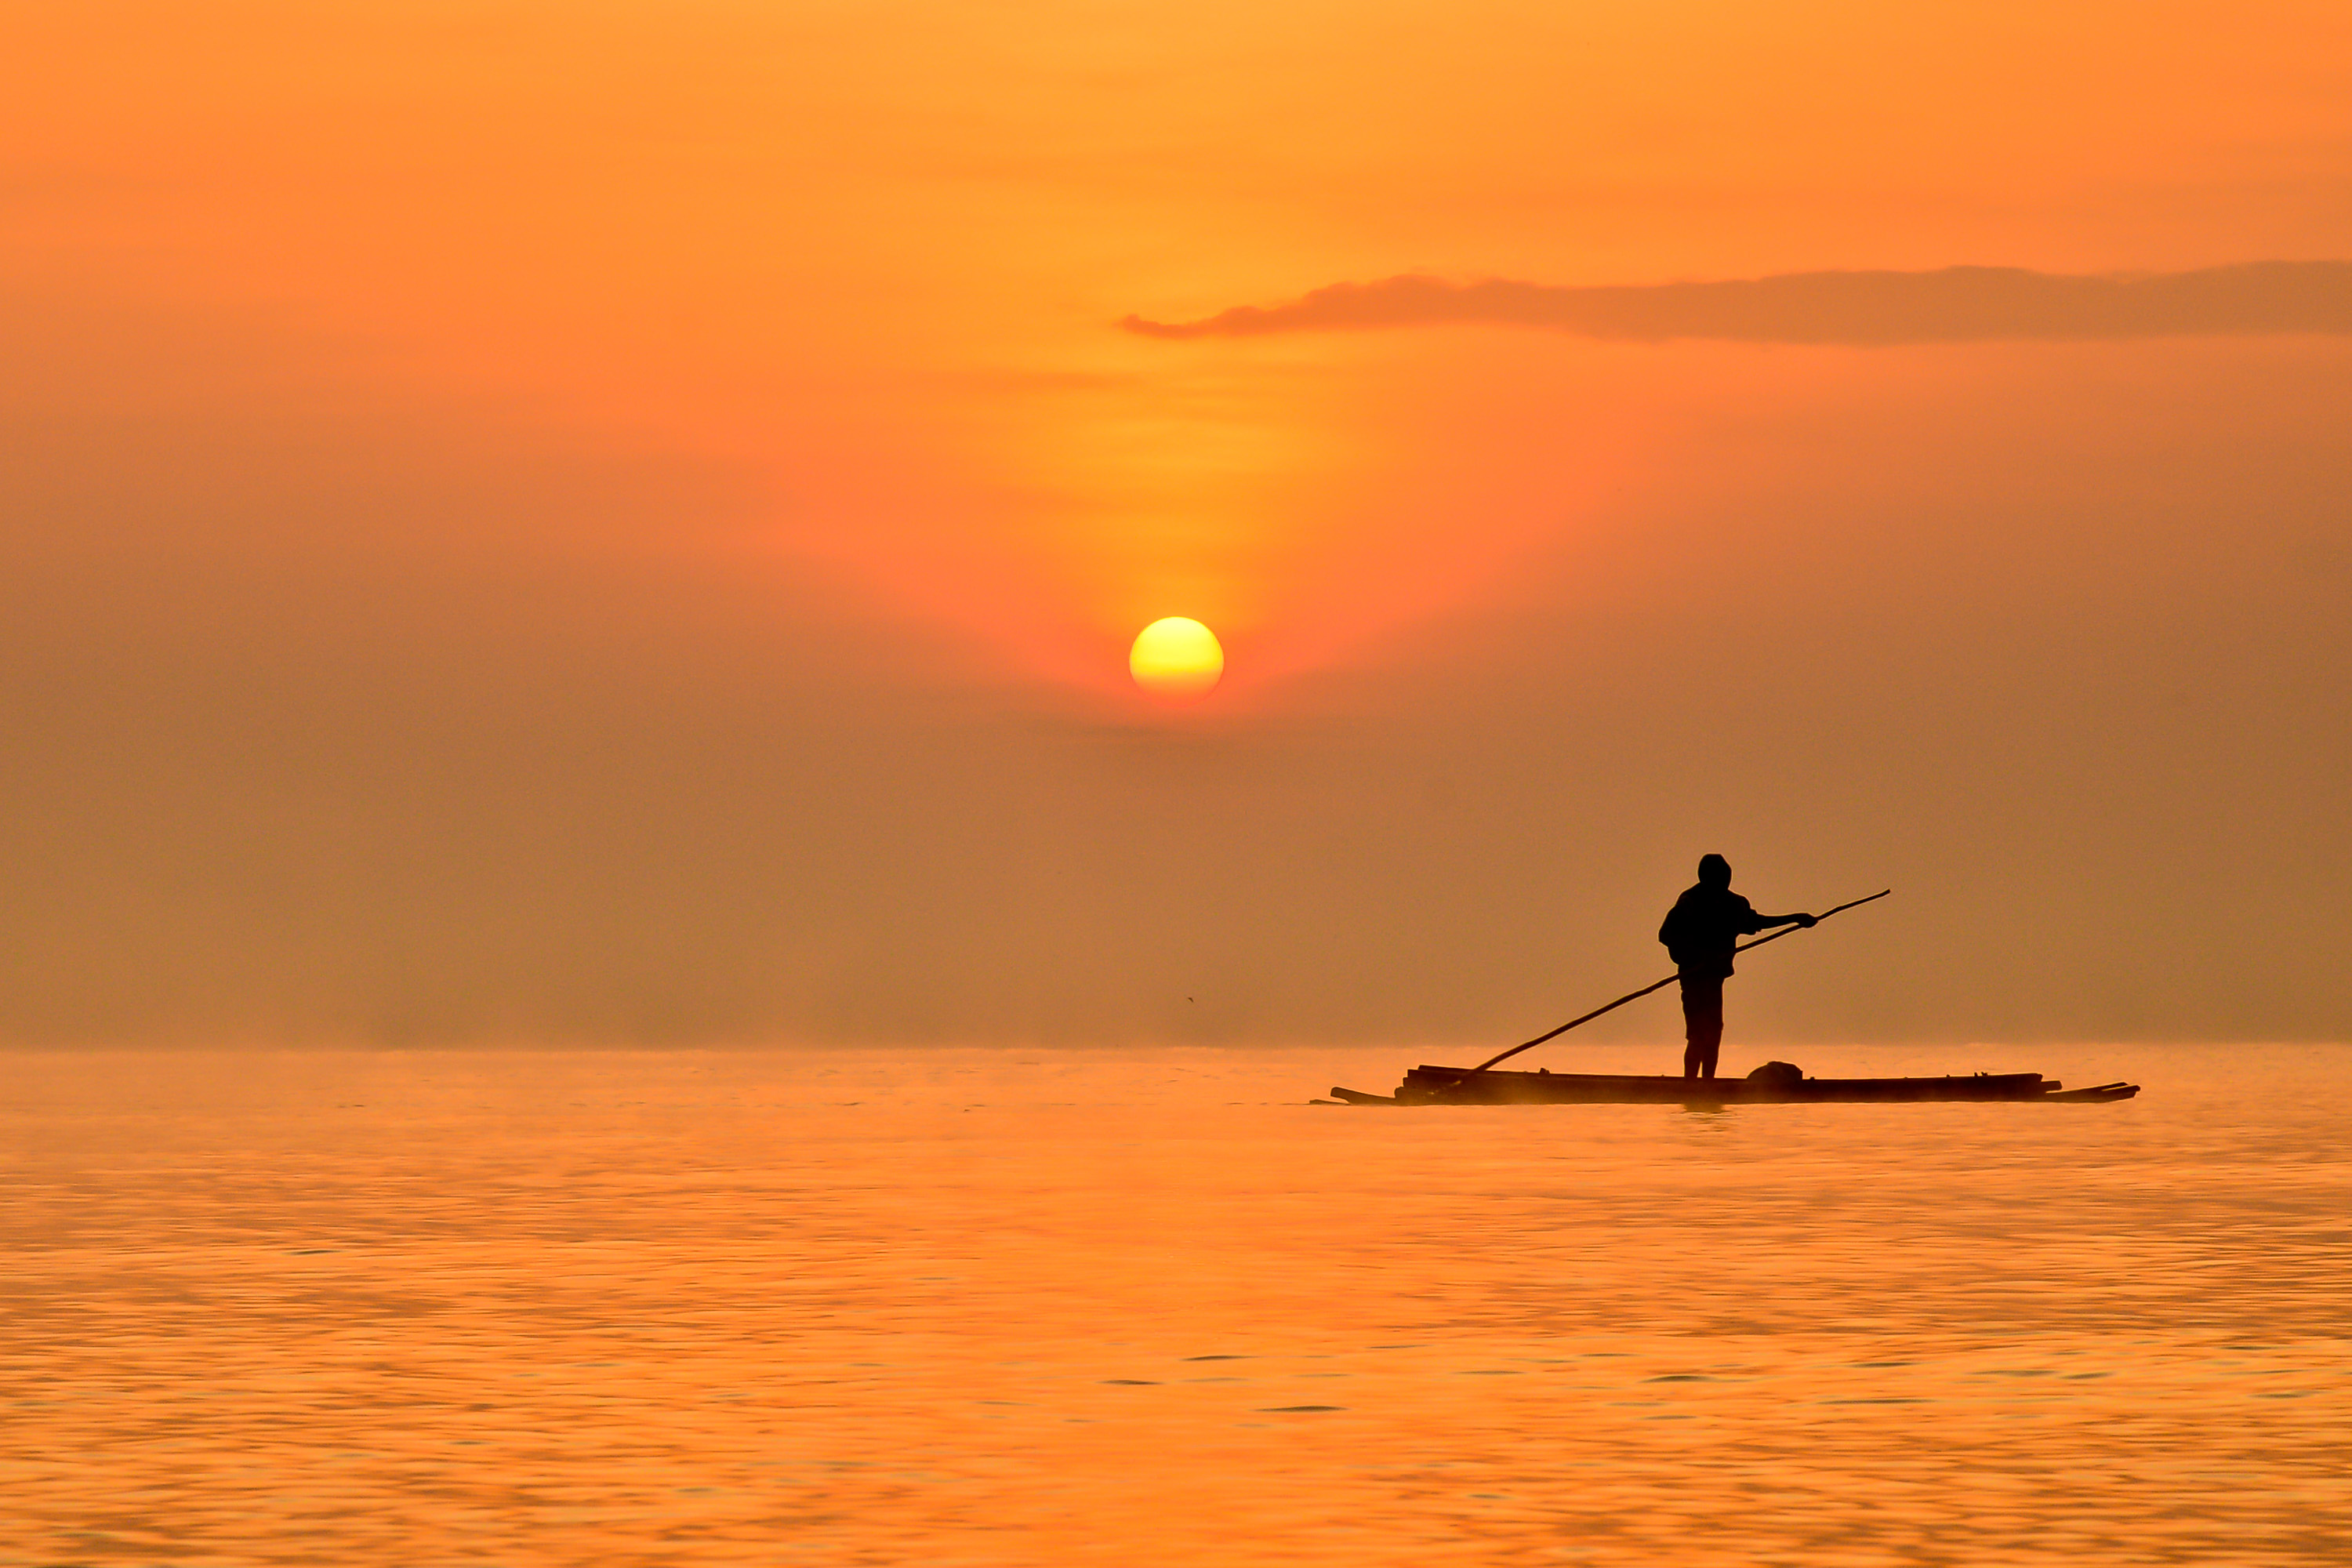 A fisherman on Lake Victoria